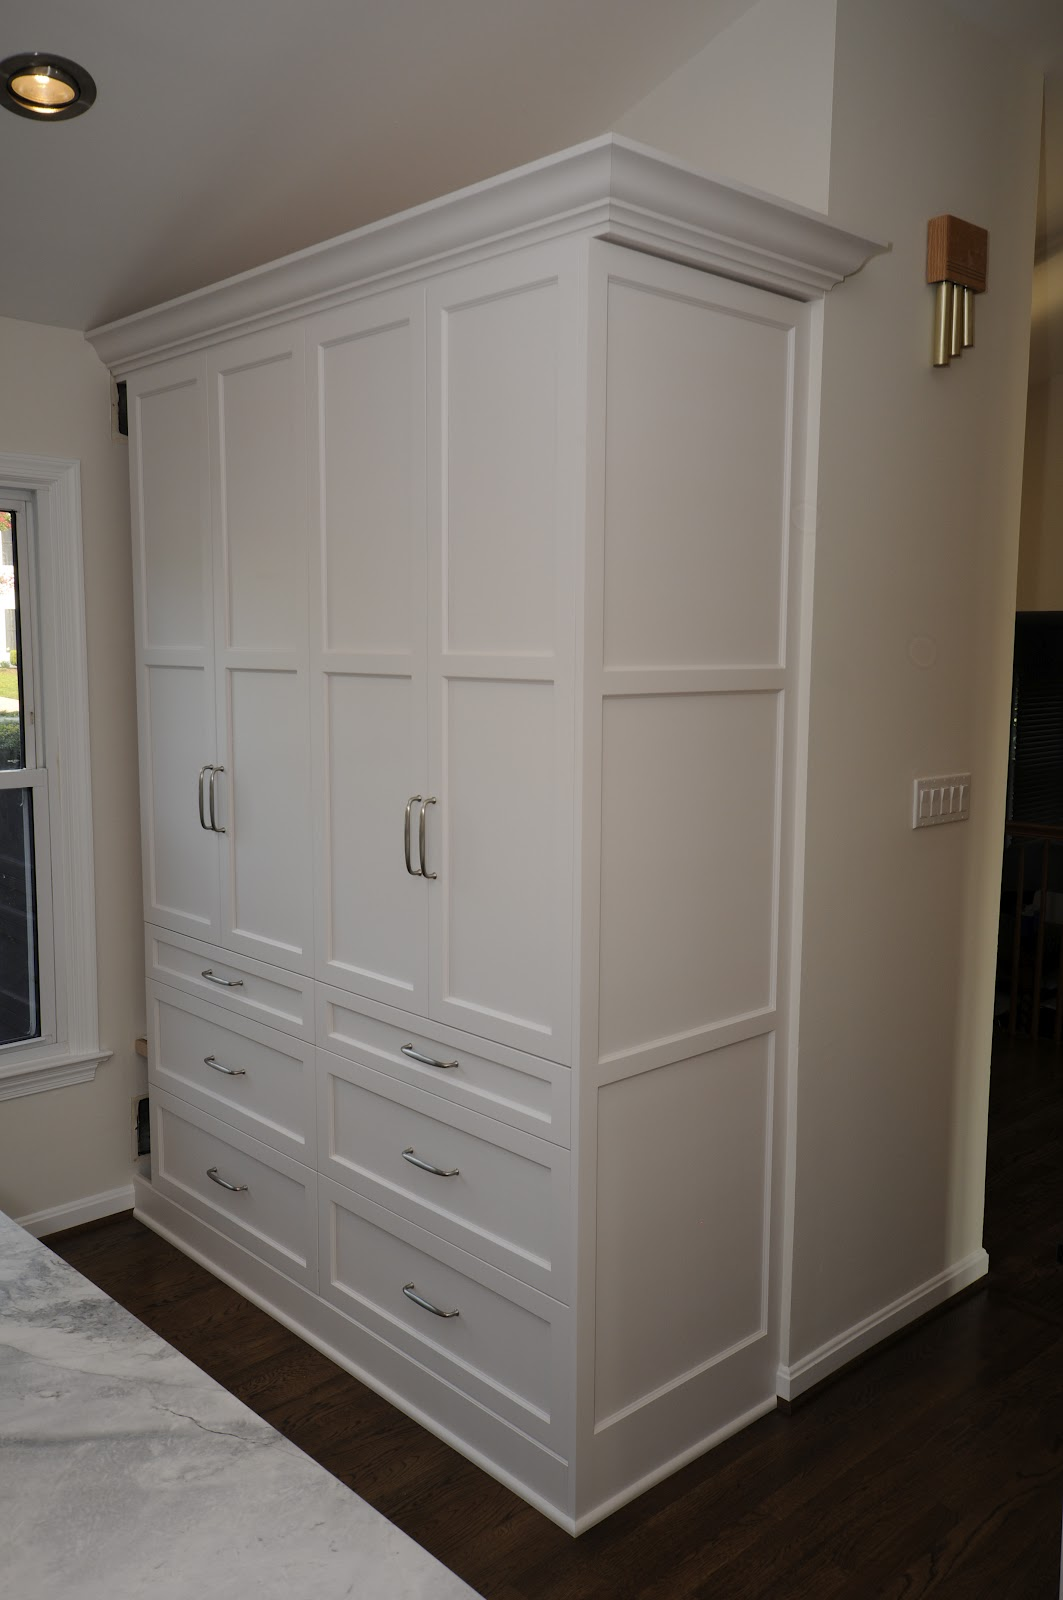 Cherry hill cabinetry soapstone and white painted for Cupboard cabinet